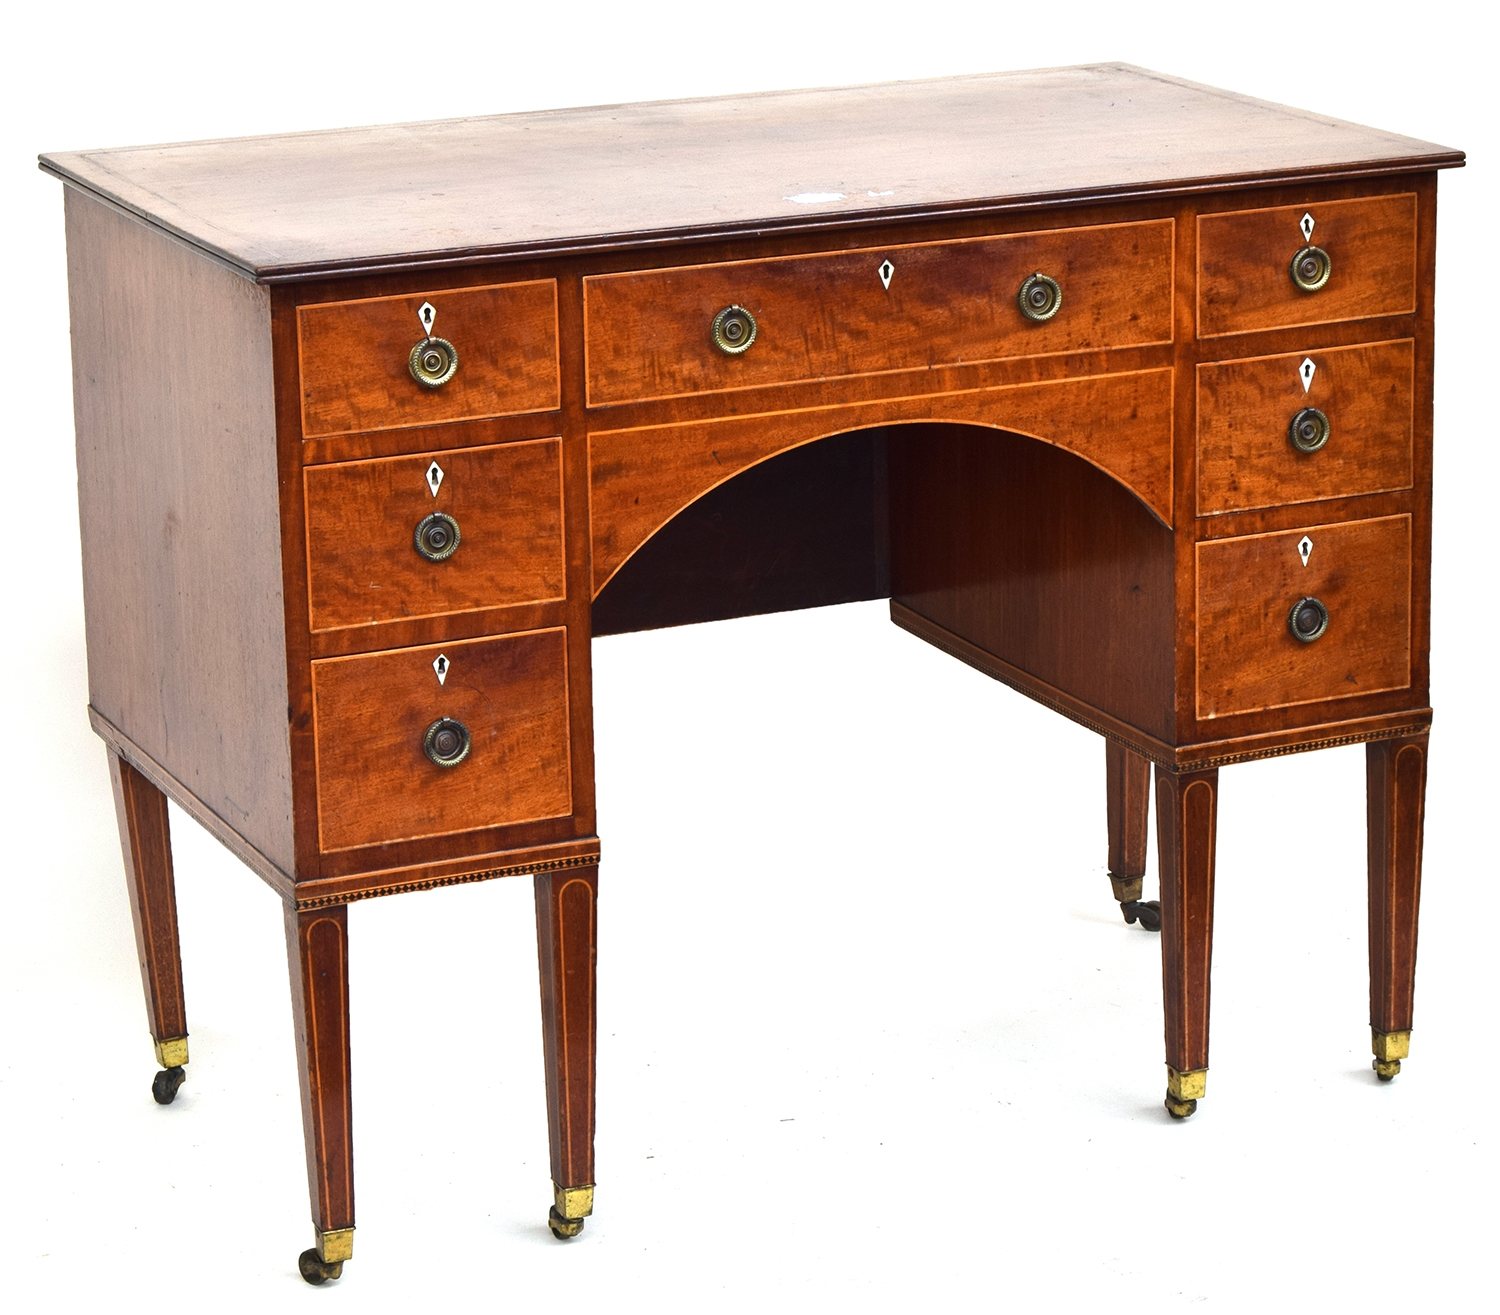 A Regency mahogany kneehole dressing table, with an arrangement of seven drawers, with light wood - Image 2 of 2